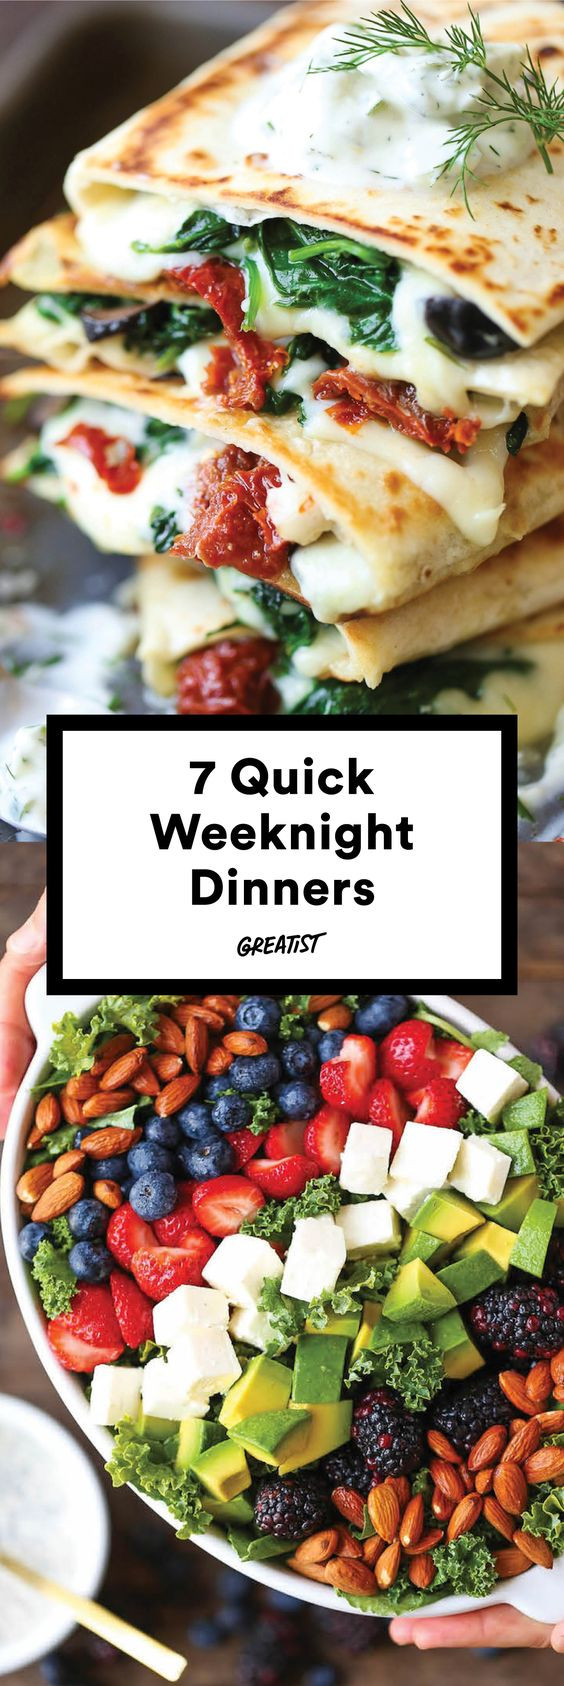 Easy Healthy Dinners For Family  7 Quick Fix Dinners That Make Weeknight Cooking a Cinch